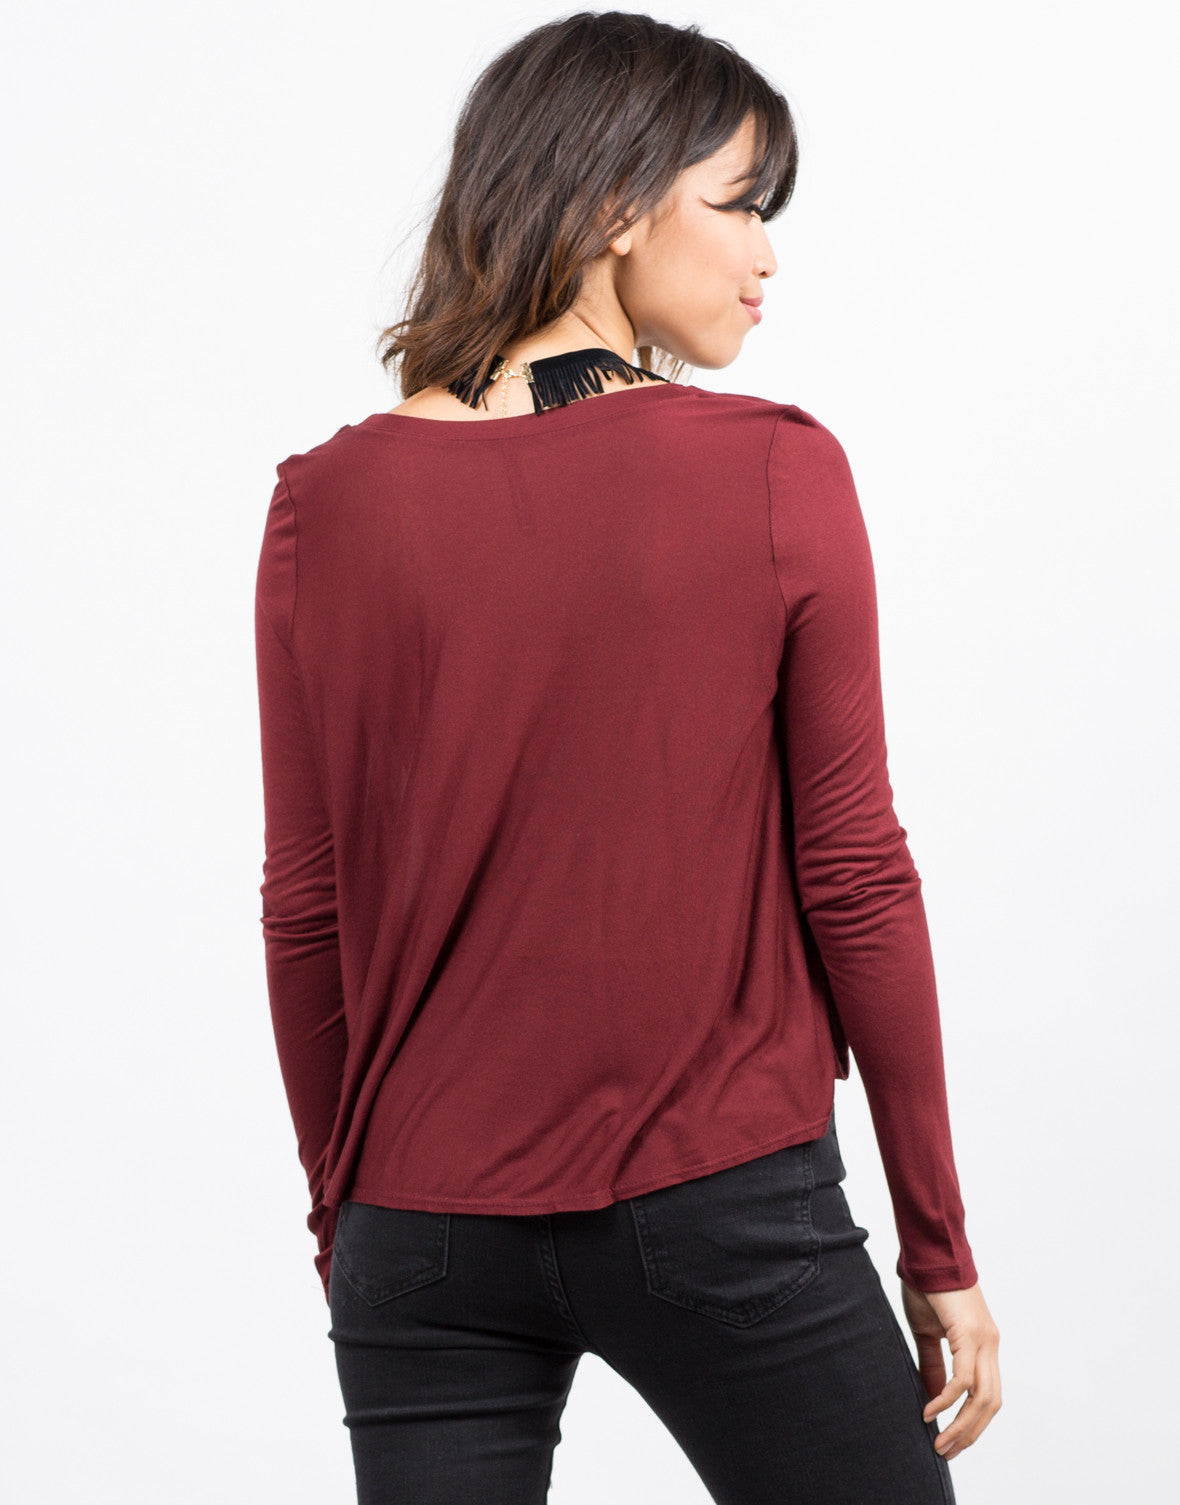 Back View of Simple Semi Sheer Lightweight Long Sleeve Top